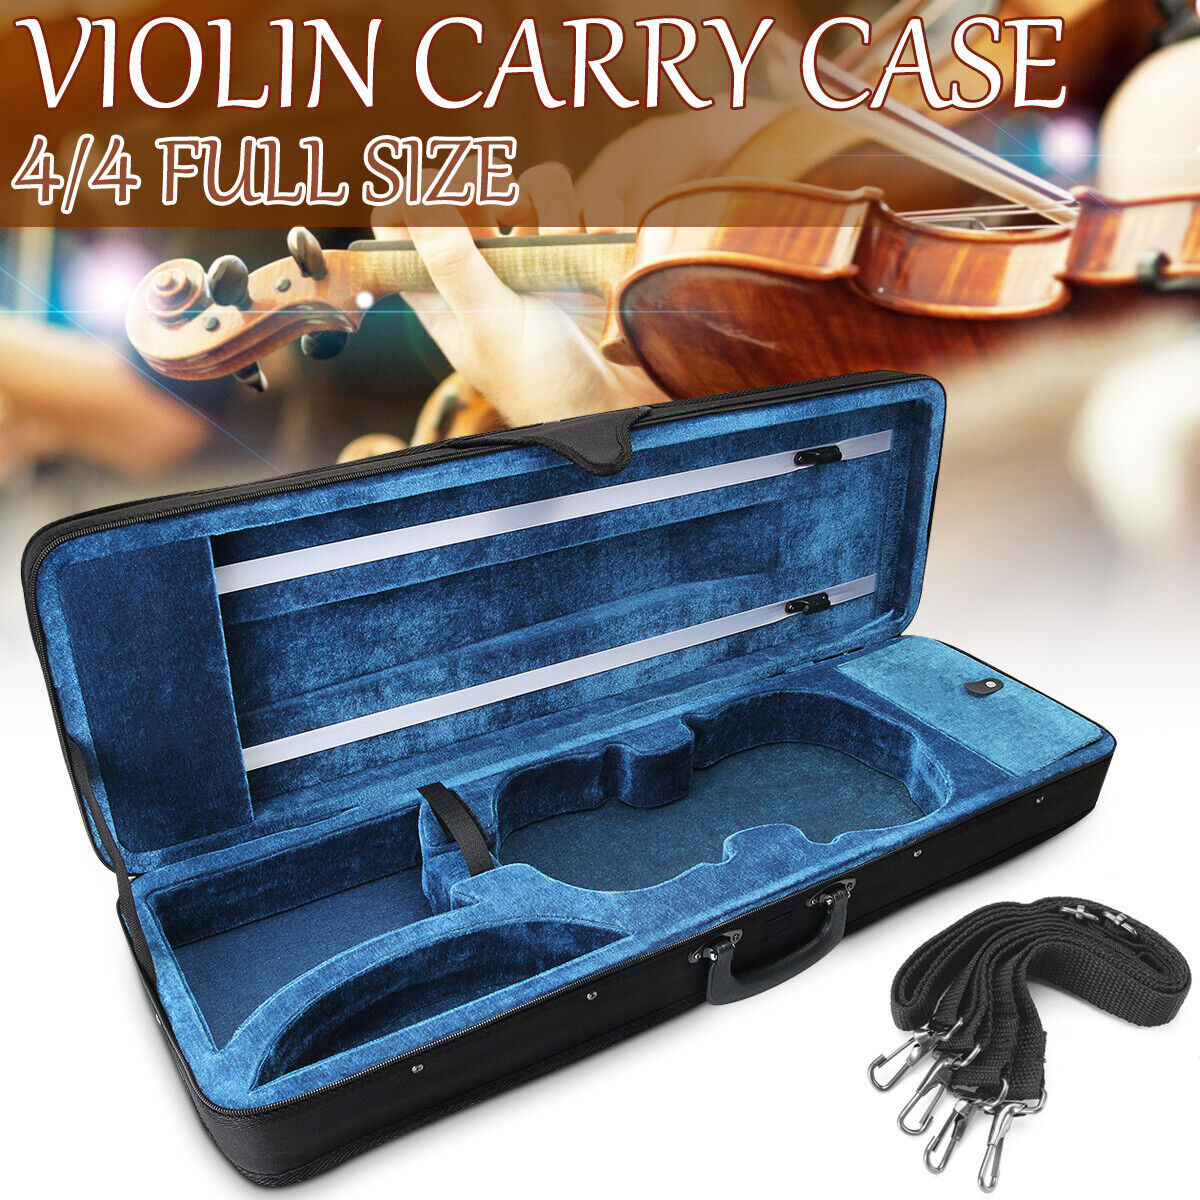 Black 4/4 Full Size Oblong Shape Violin Carry Box Hard Case with Musical Instruments & Gear